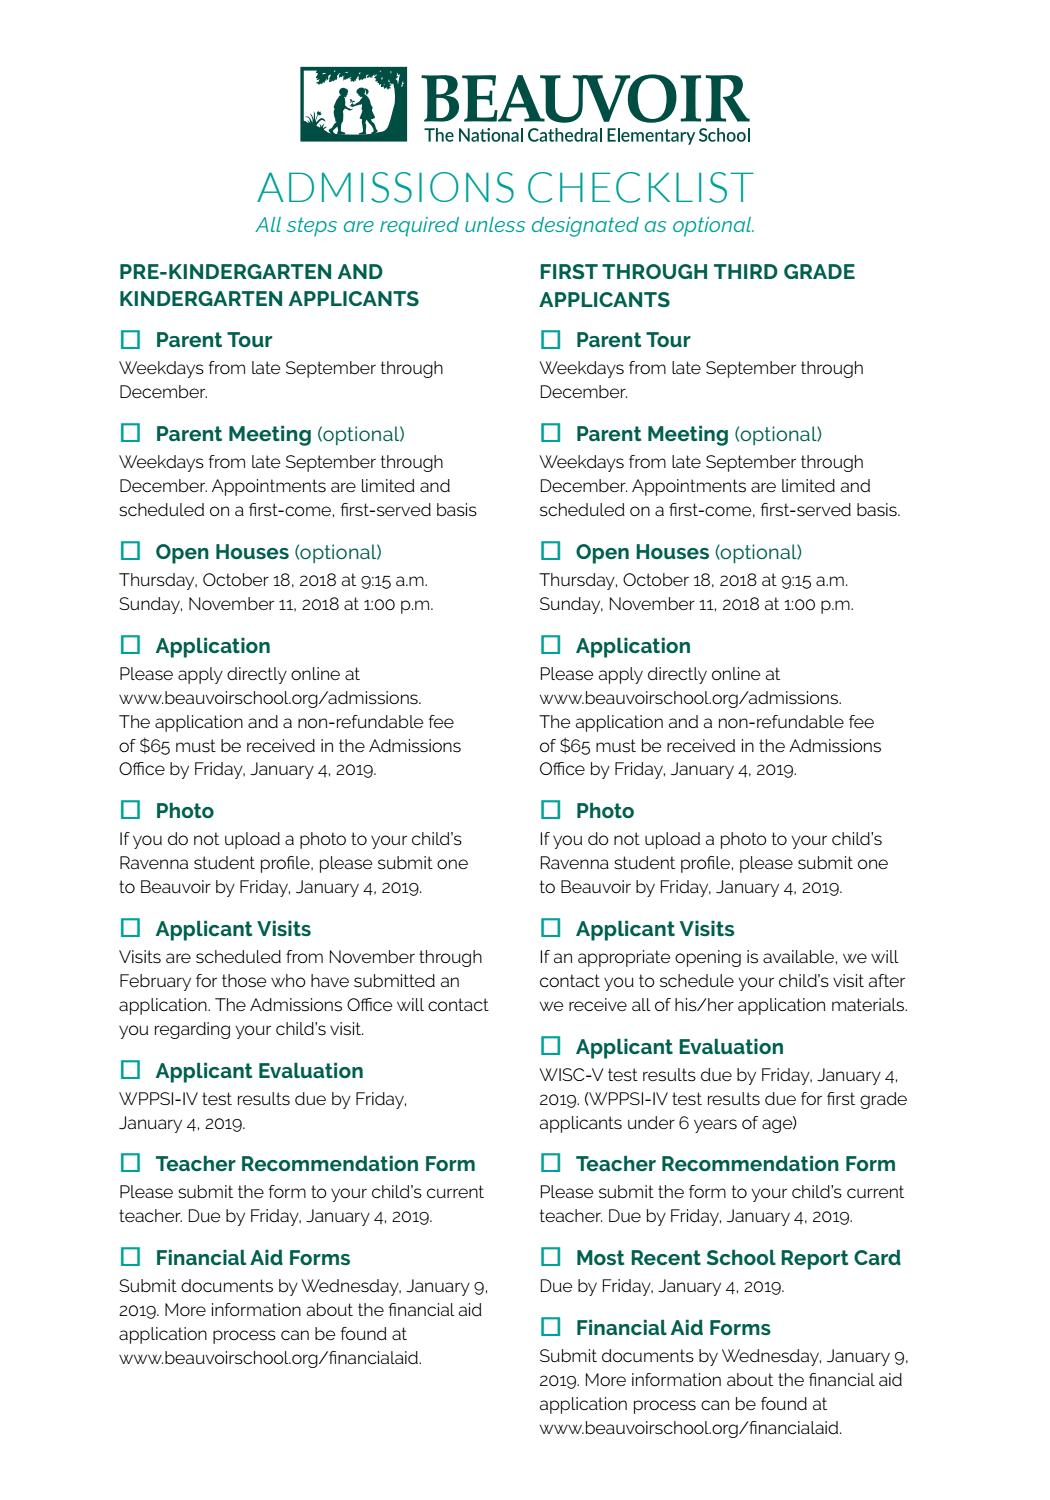 Beauvoir Admissions Checklist 2018-2019 by Beauvoir, The National